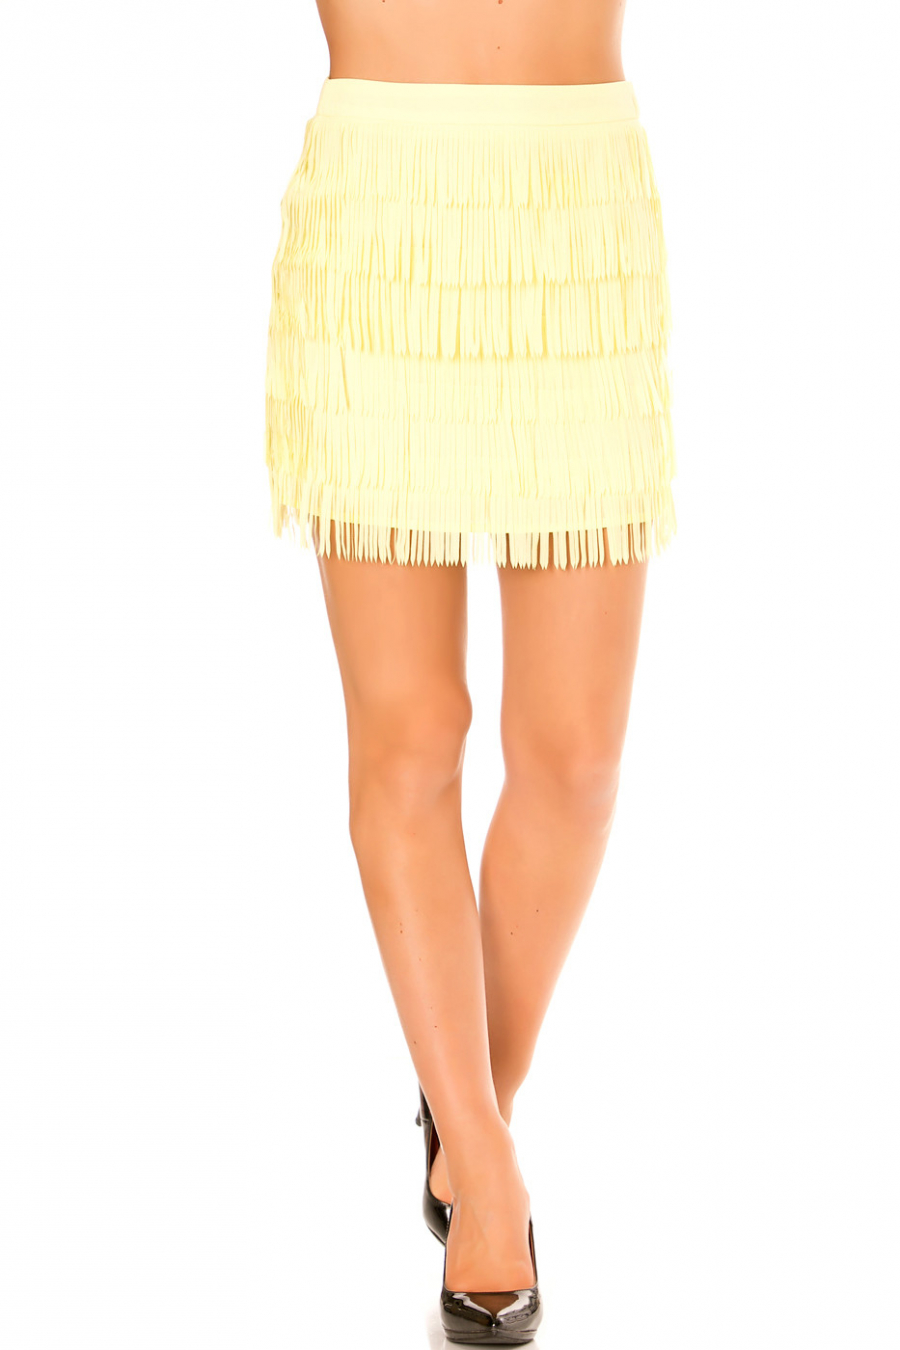 Very fashionable yellow mini skirt with fringe ideal for summer. Cheap women's fashion. 7785